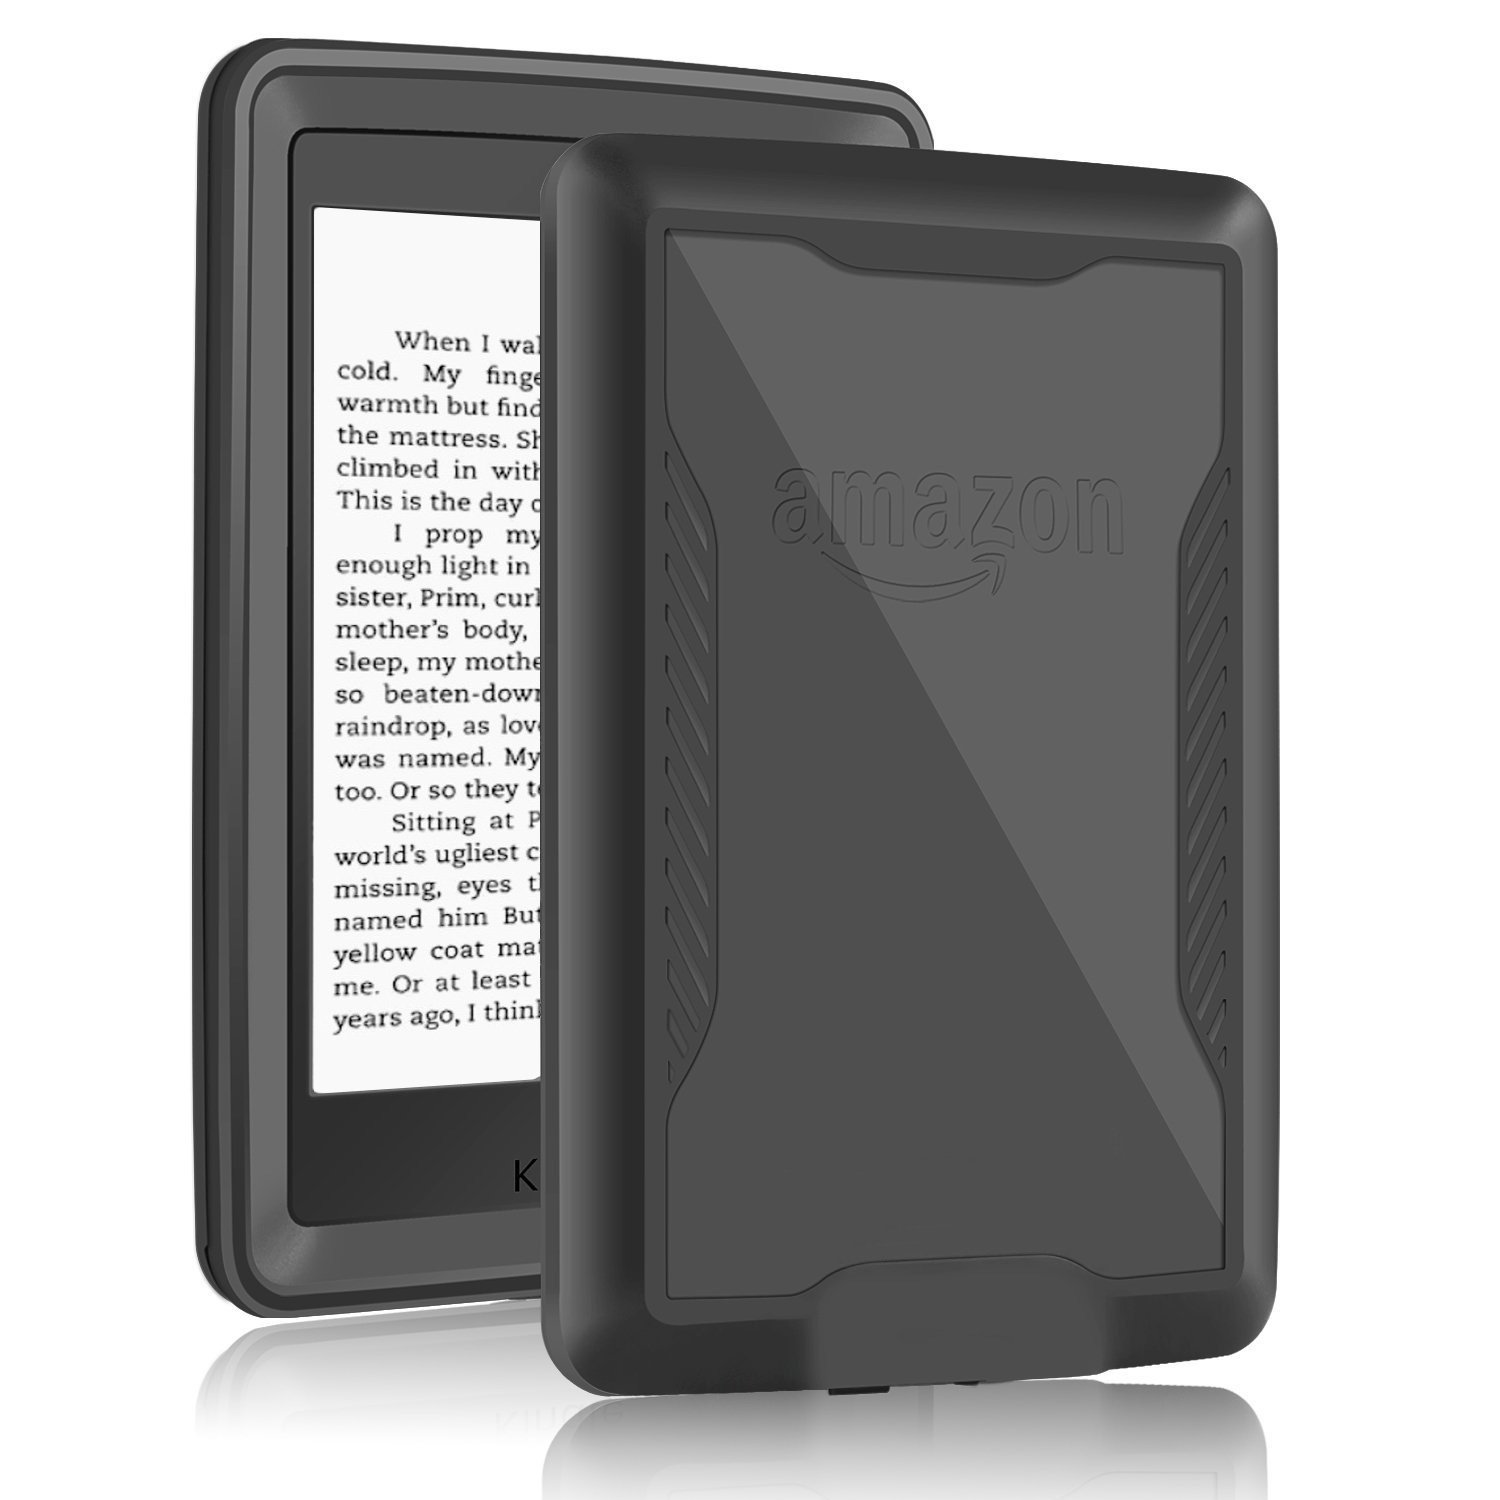 Kindle Paperwhite Case, iThrough Paperwhite Waterproof Underwater E-Reader Case, Dustproof, Snowproof, Shockproof Full Sealed Protection Case with Touched Screen for Amazon Kindle Paperwhite